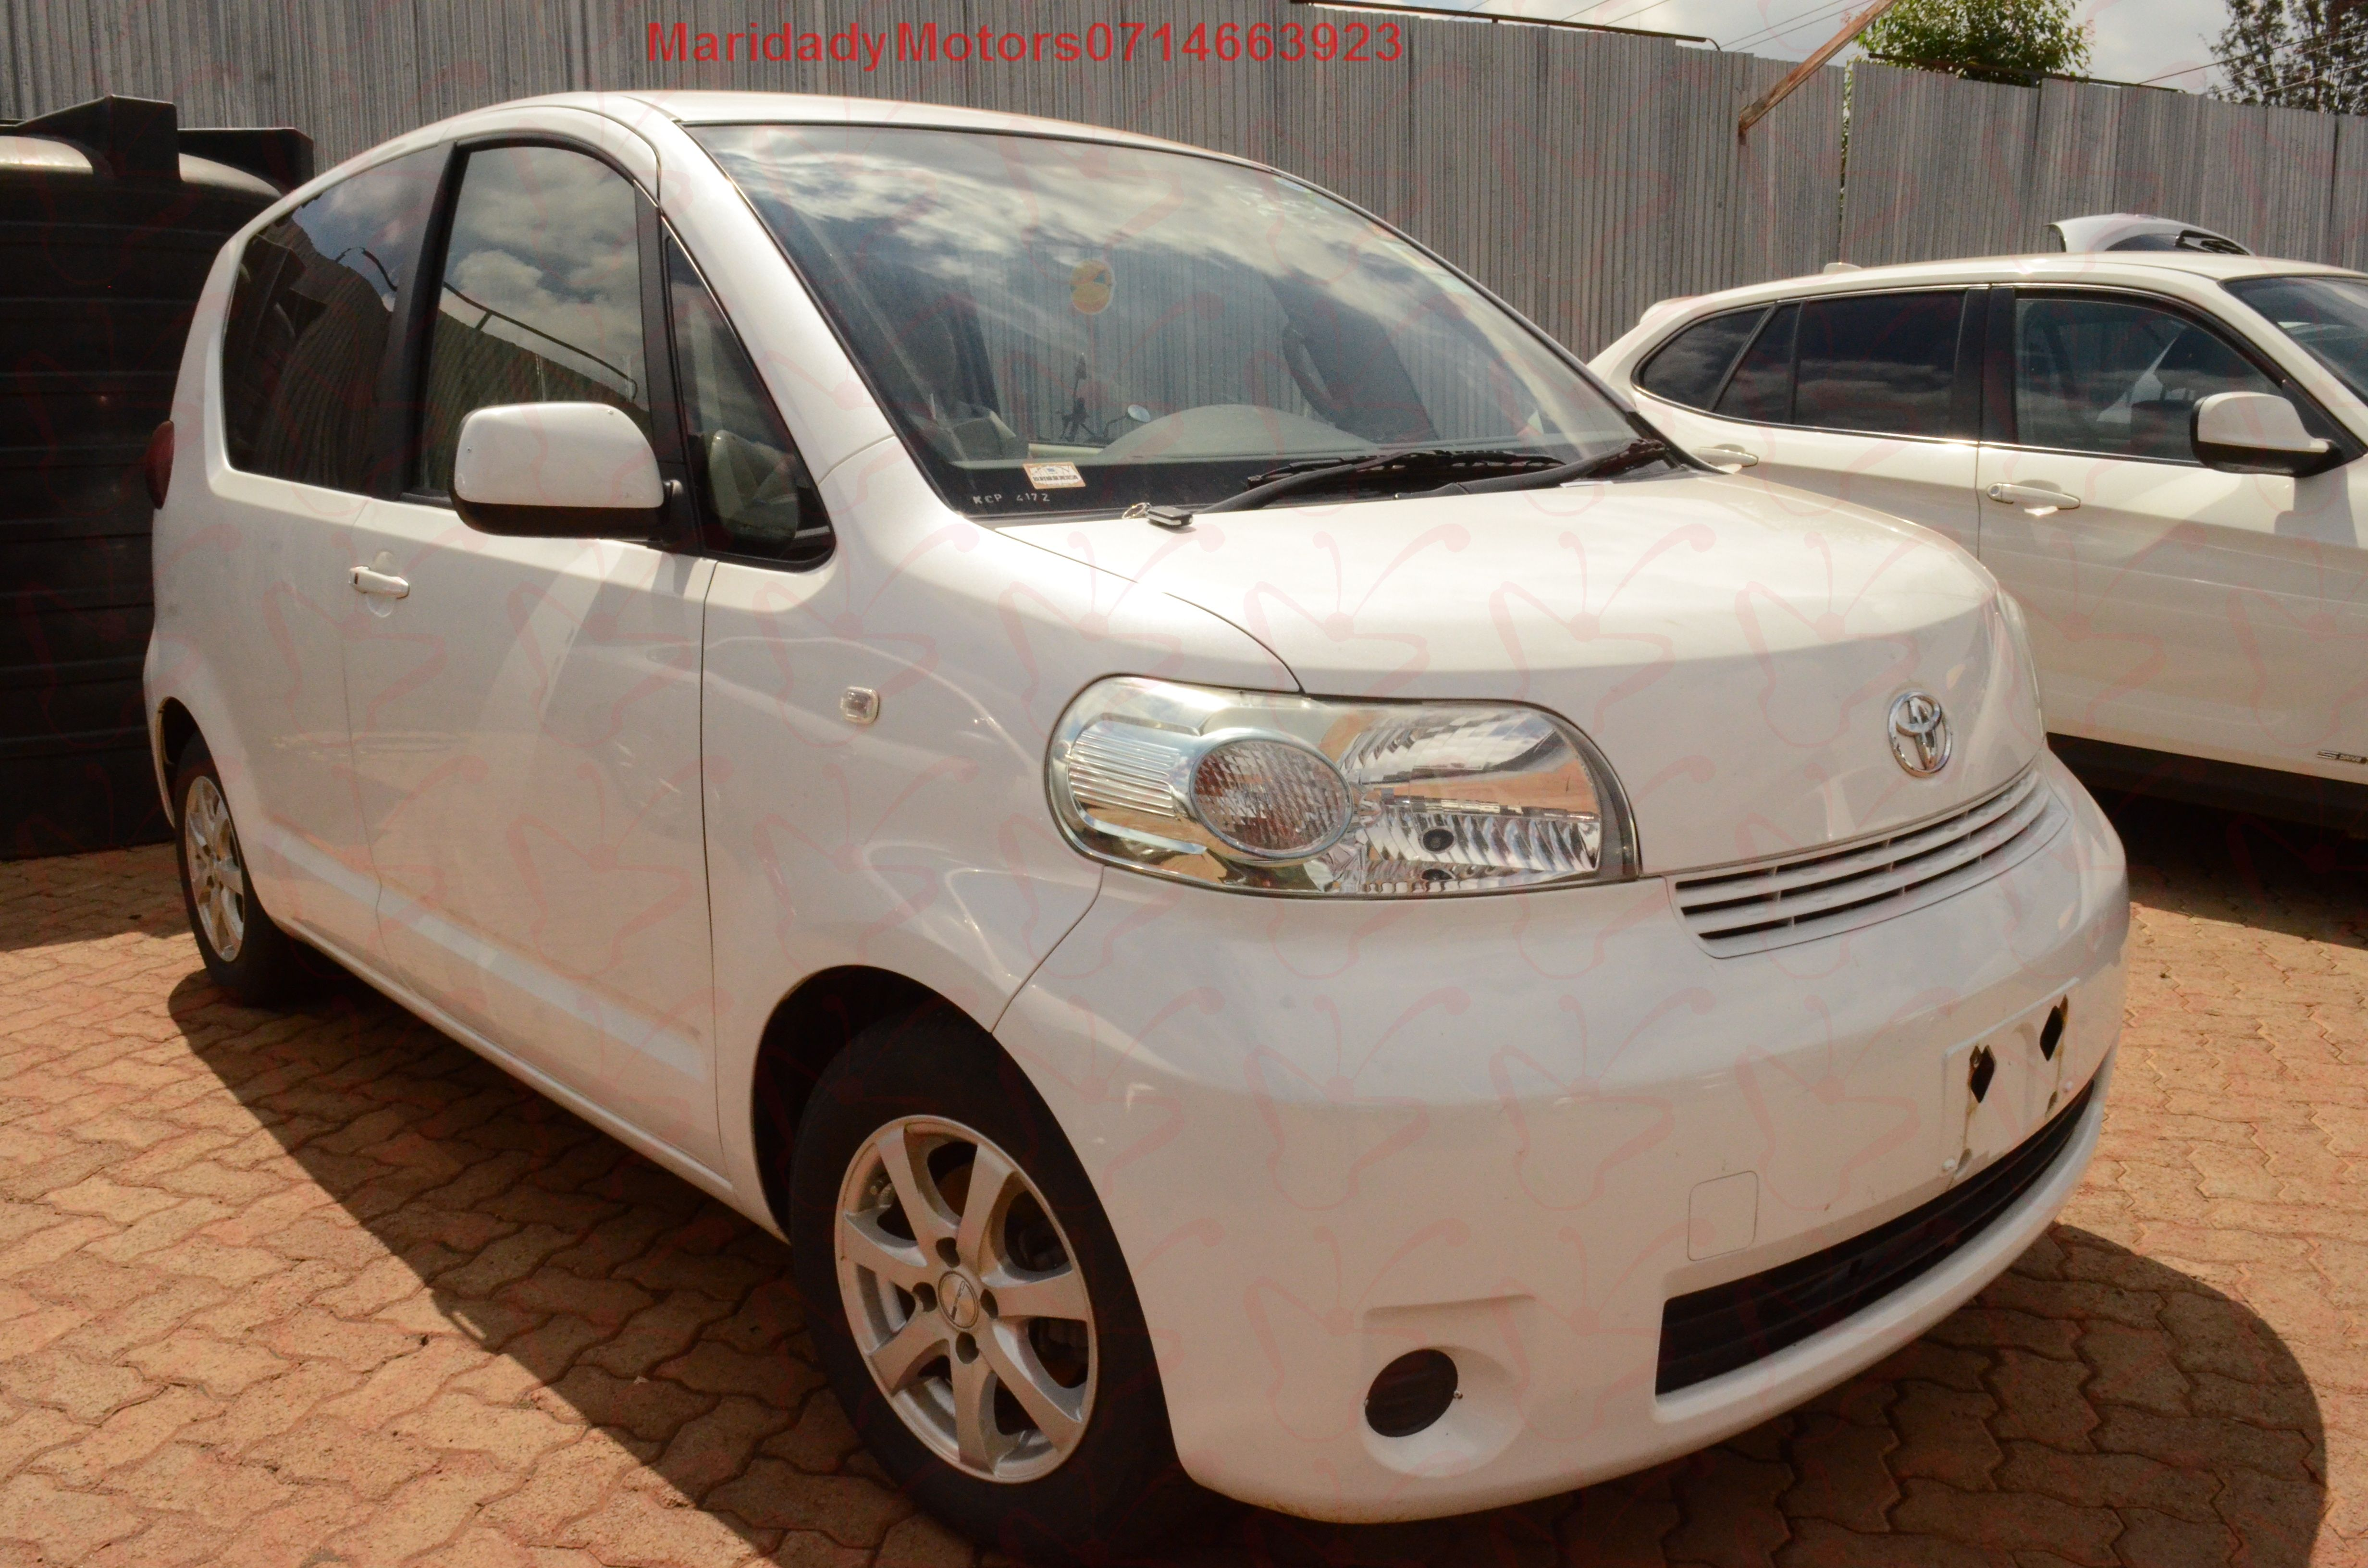 Maridady Motors is ready to offer your this Toyota Porte